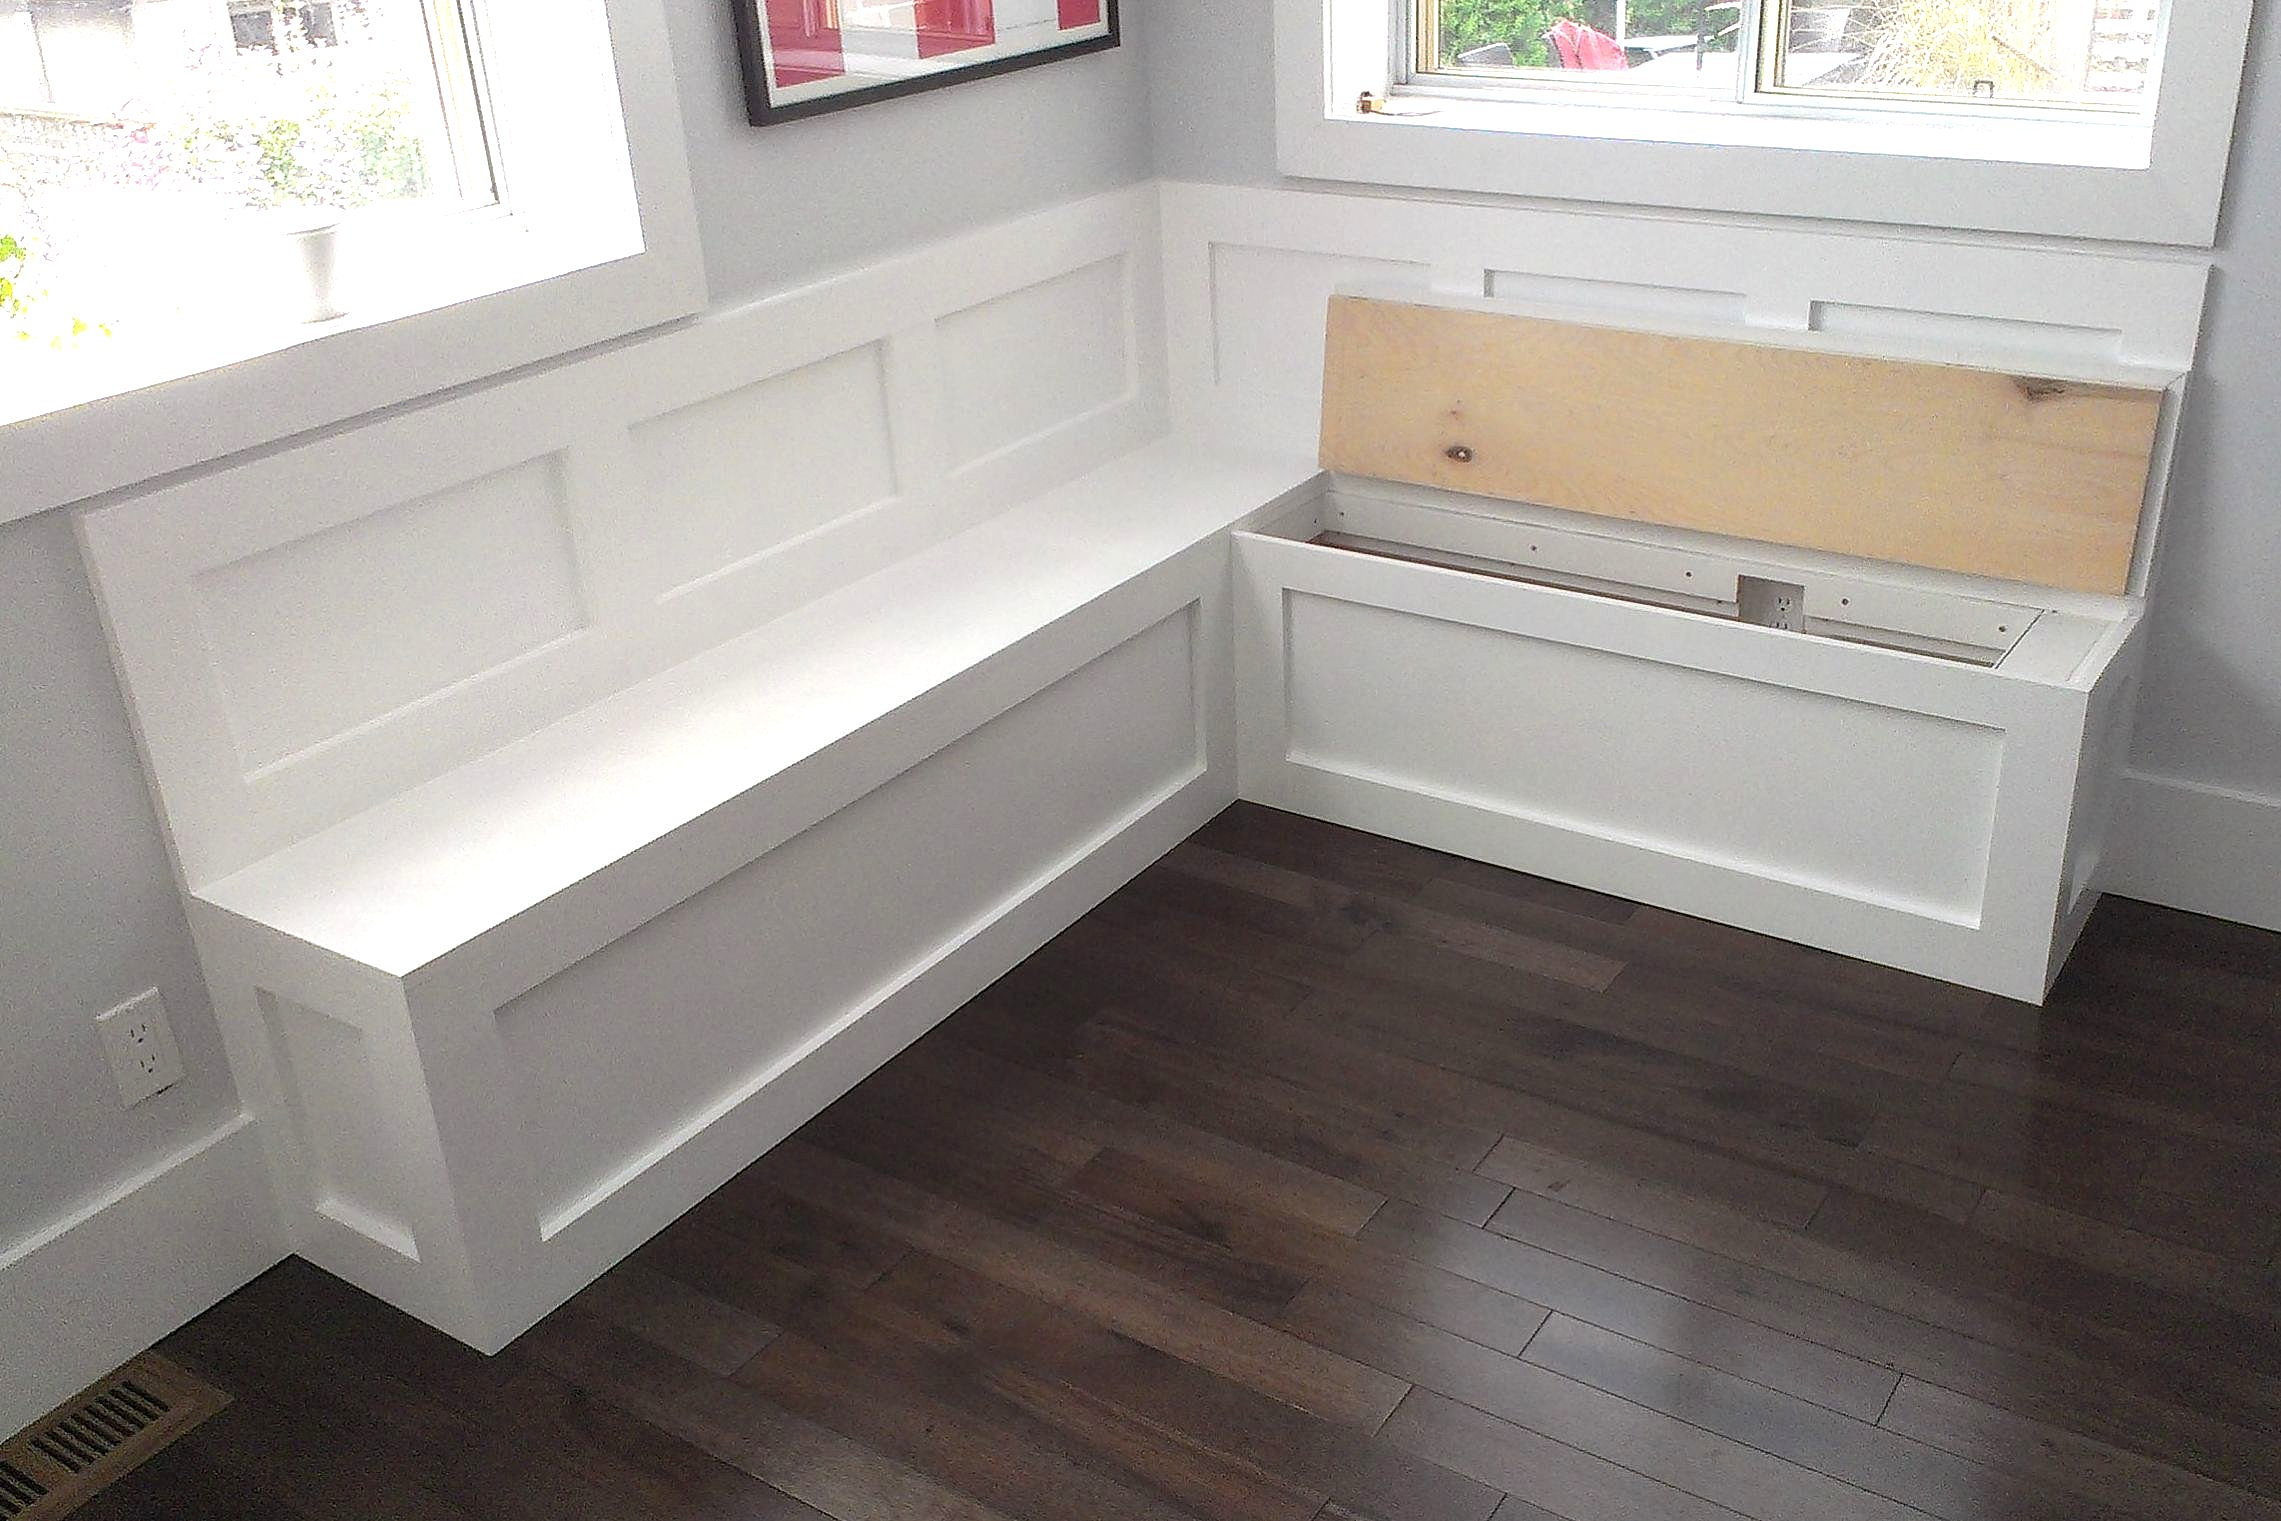 Bench For Storage Fitted With Seat Cushions And A Kitchen